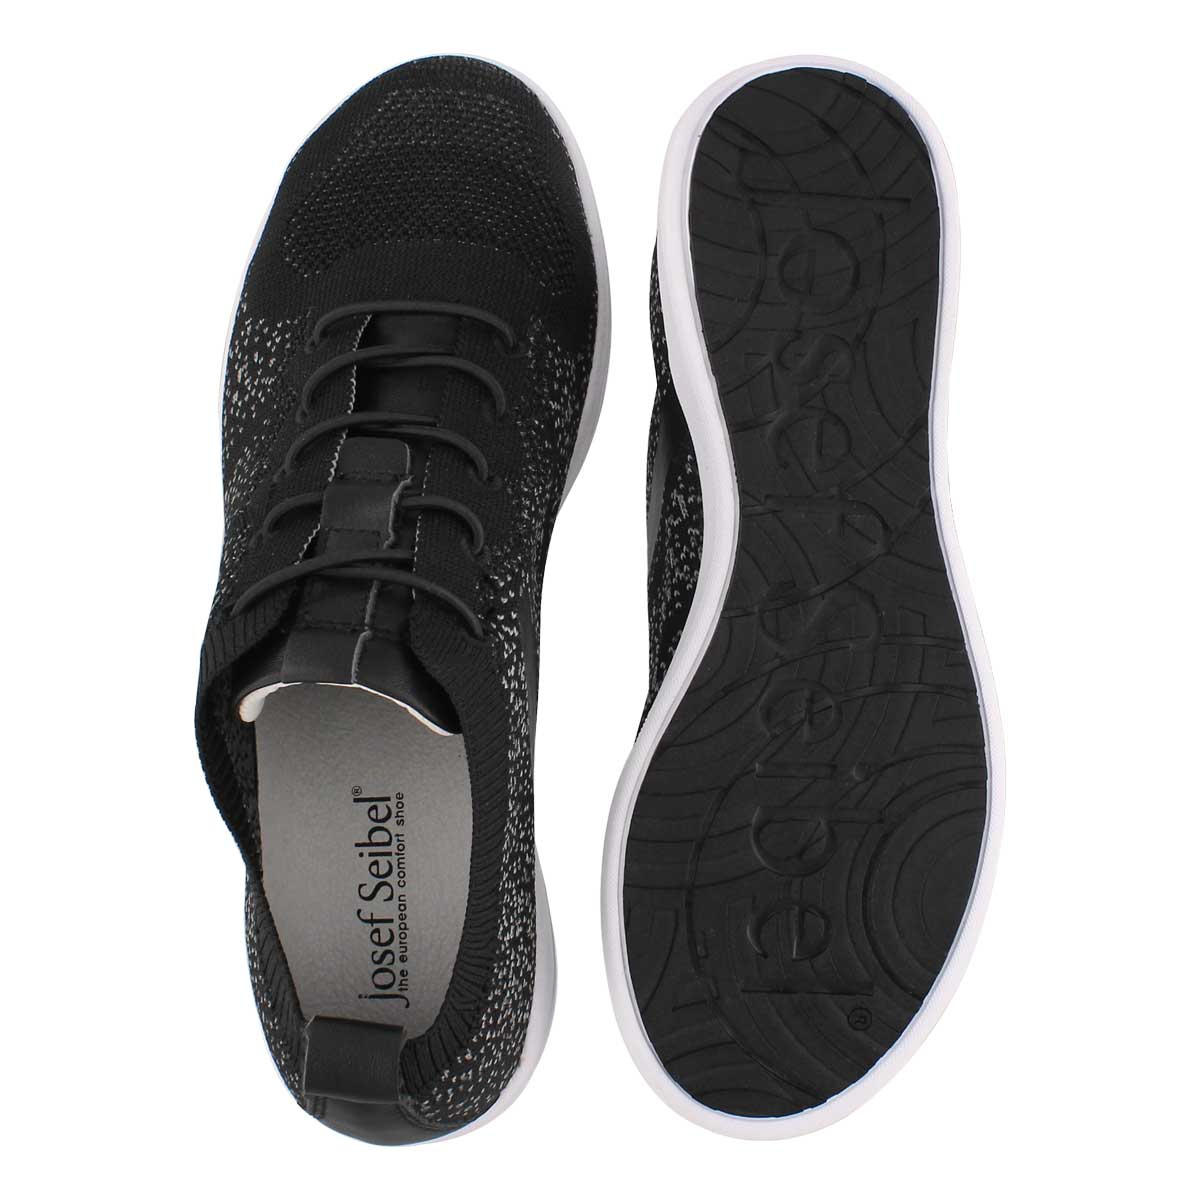 Lds Sina 43 black lace up sneaker